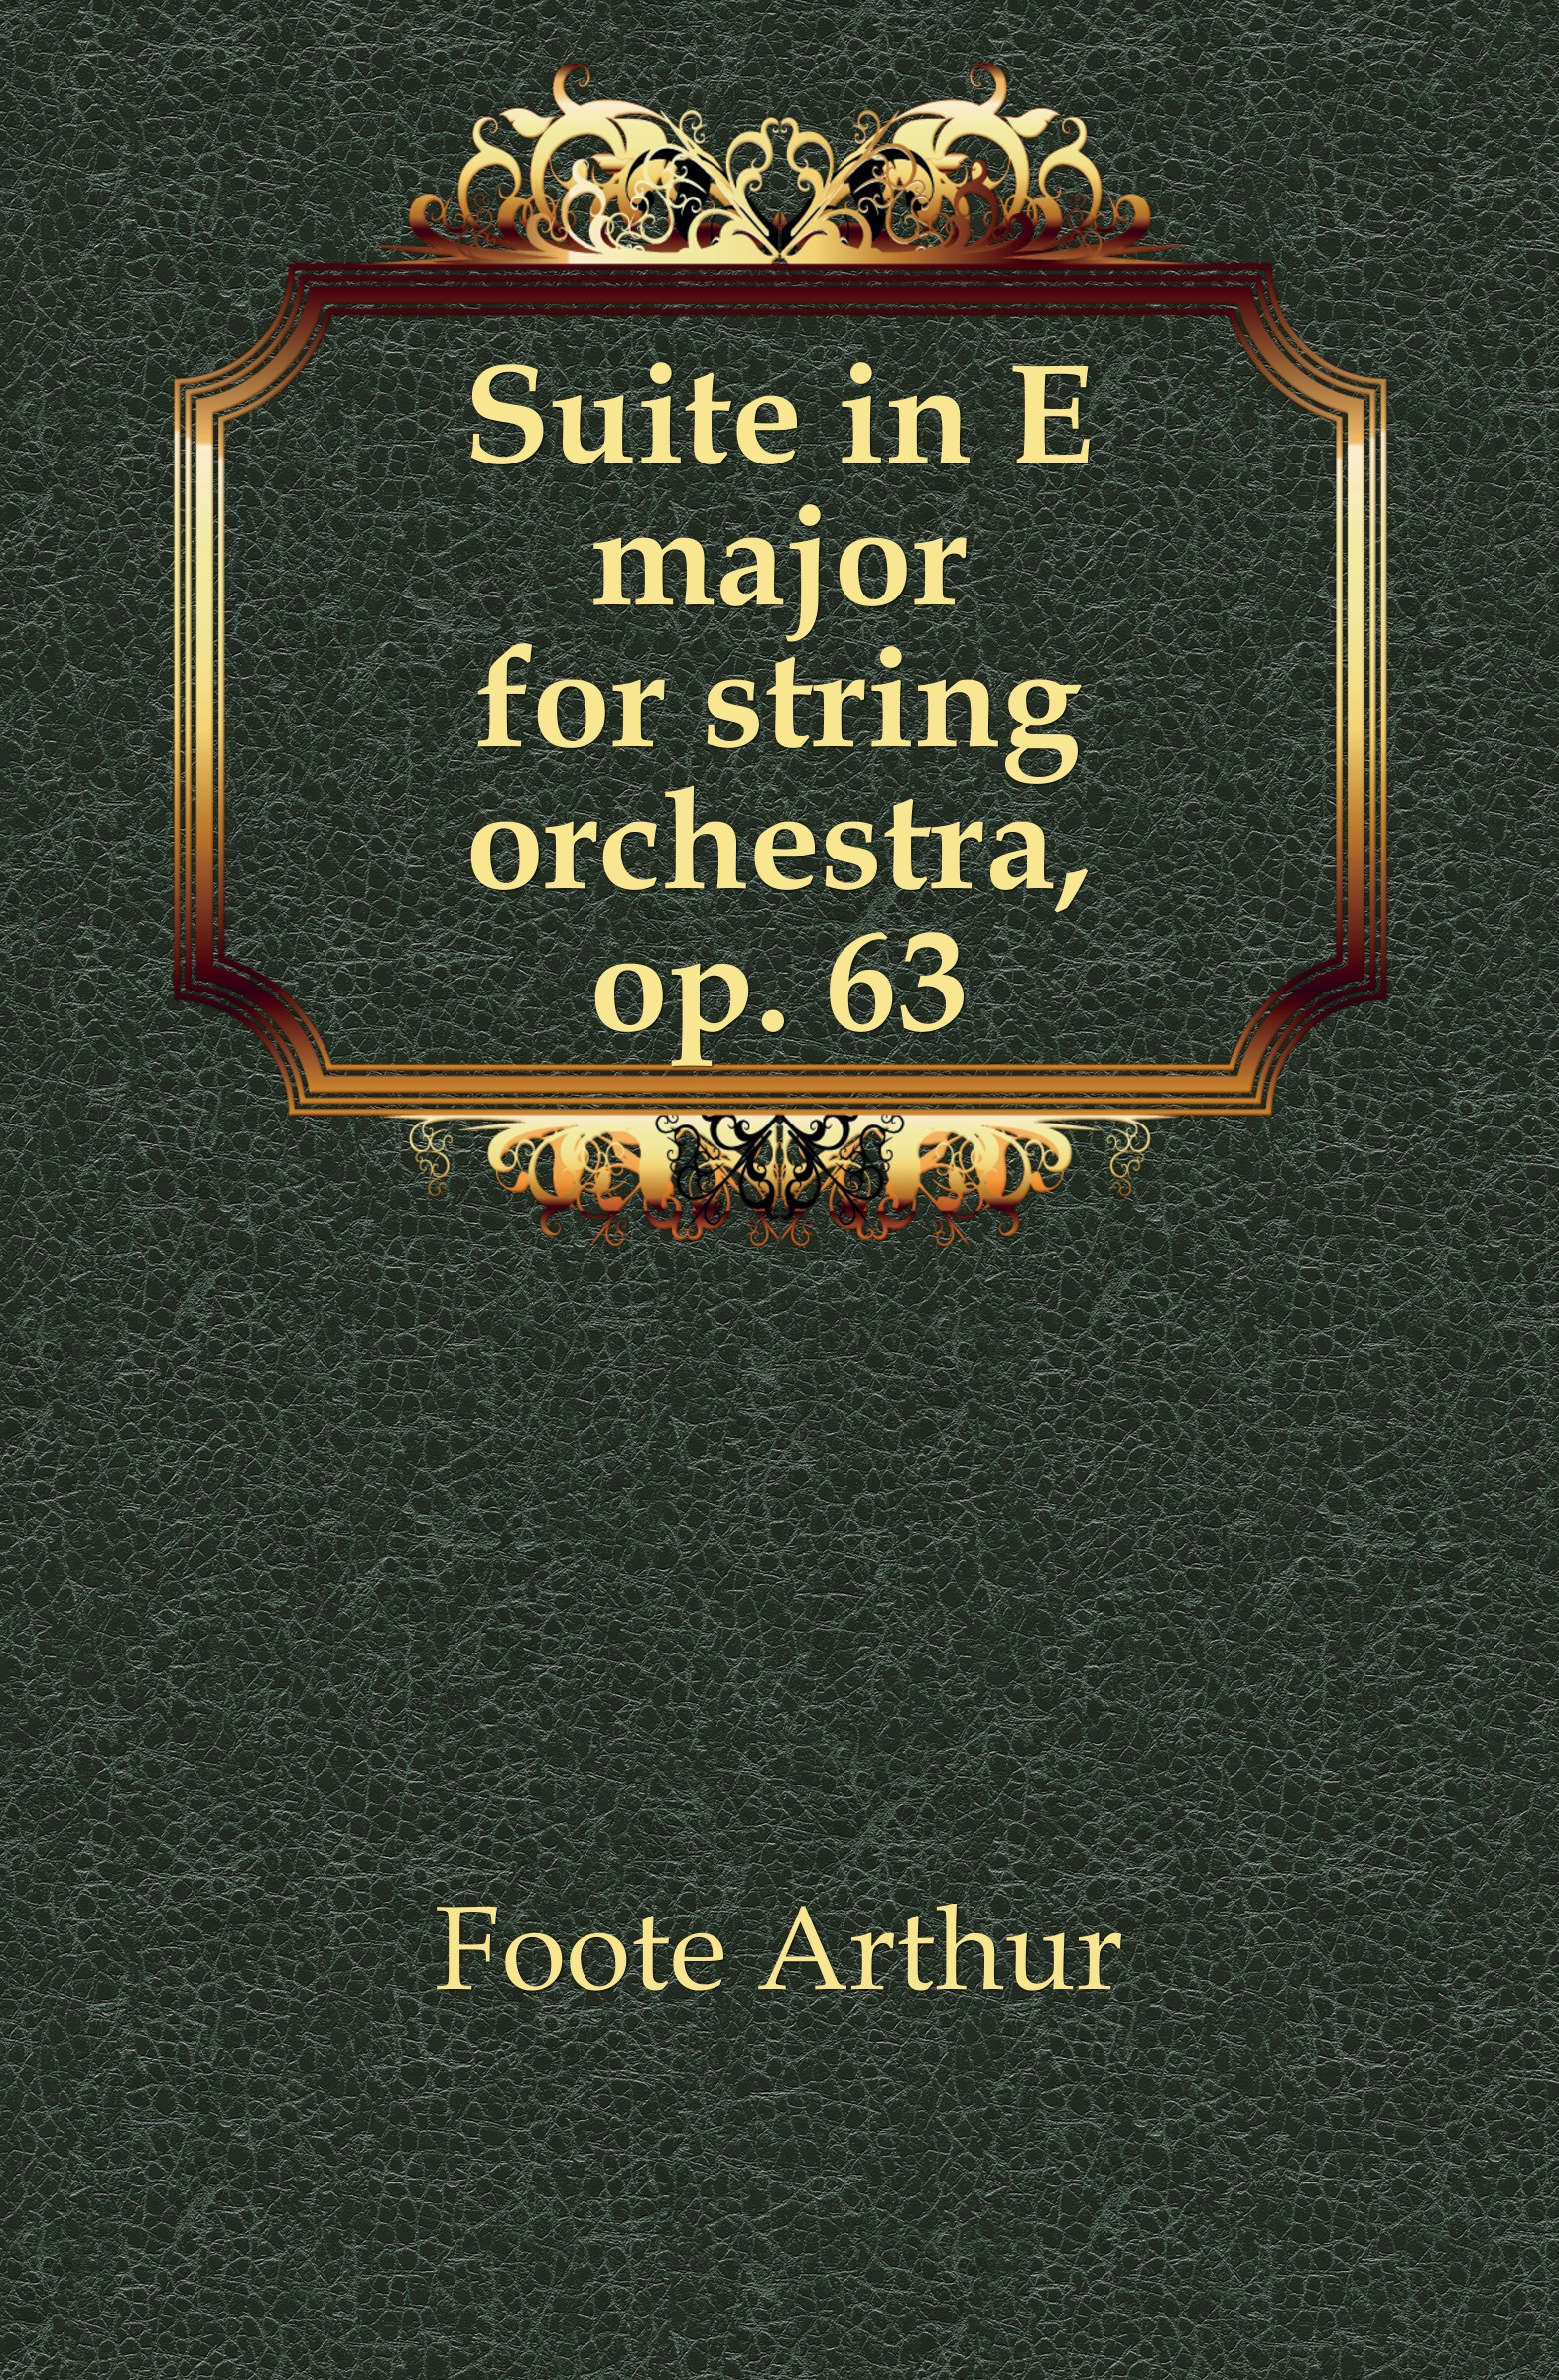 Foote Arthur Suite in E major for string orchestra, op. 63 e e taubert suite no 2 op 70